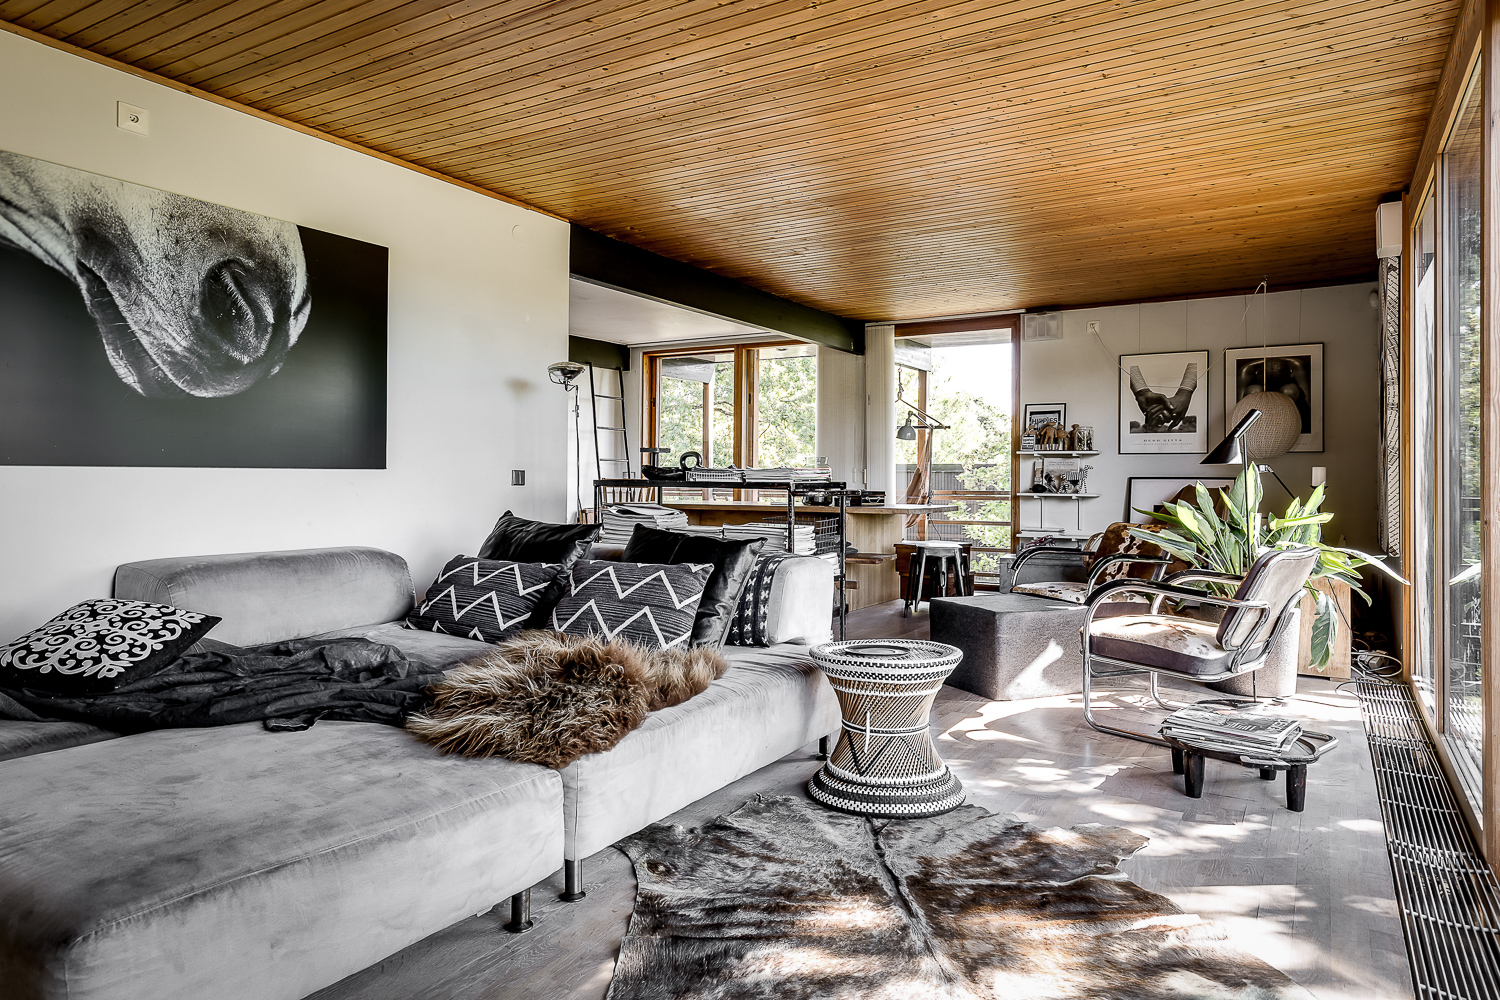 A beach villa in sweden with beautiful interiors in earth tones and natural materials